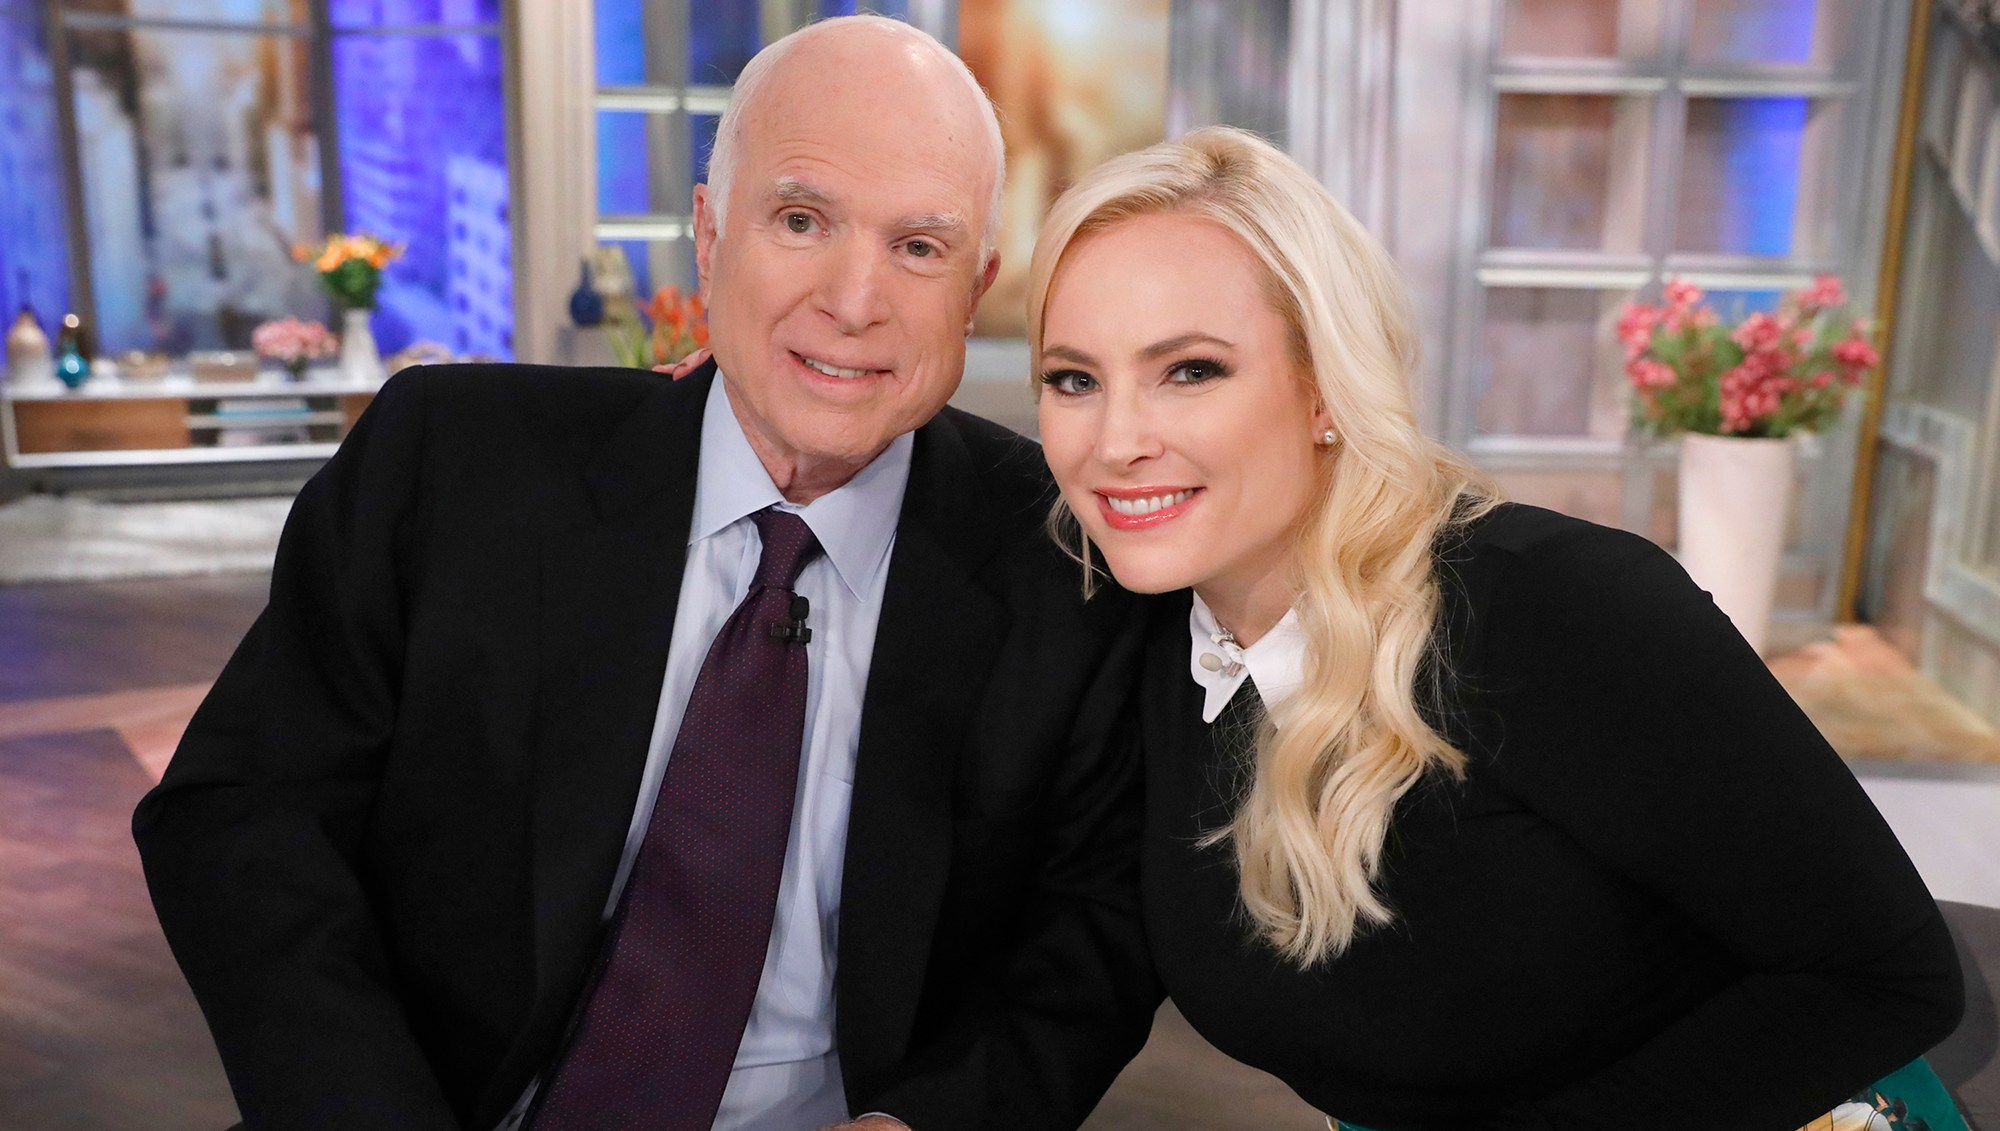 Senator John McCain and daughter, Meghan McCain